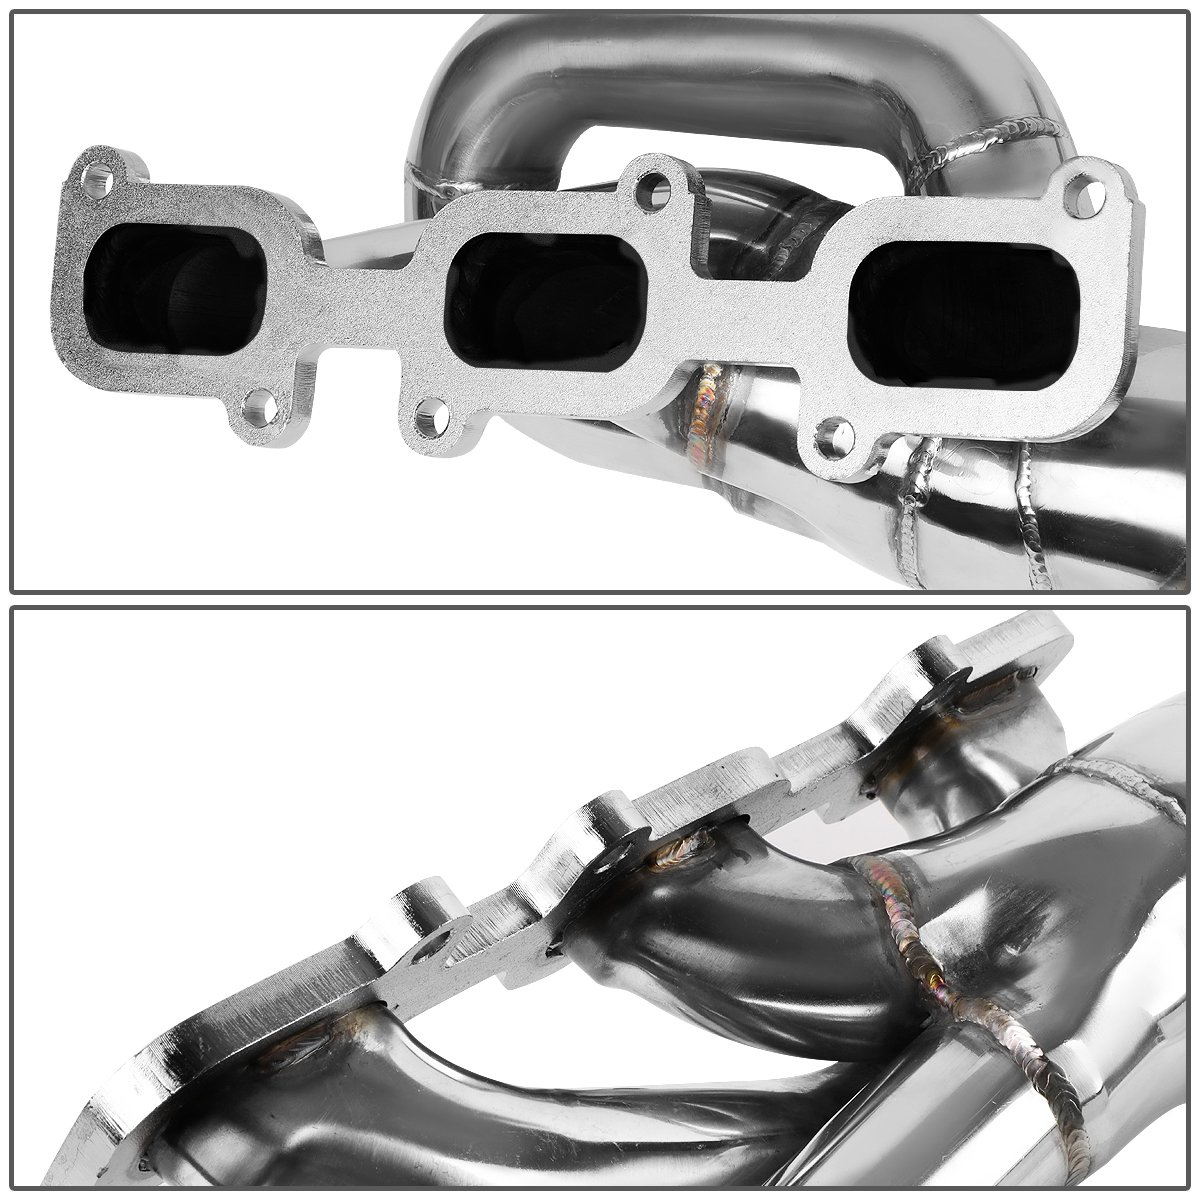 For Ford Mustang 3.7 V6 Stainless Steel Shorty Exhaust Manifold Header